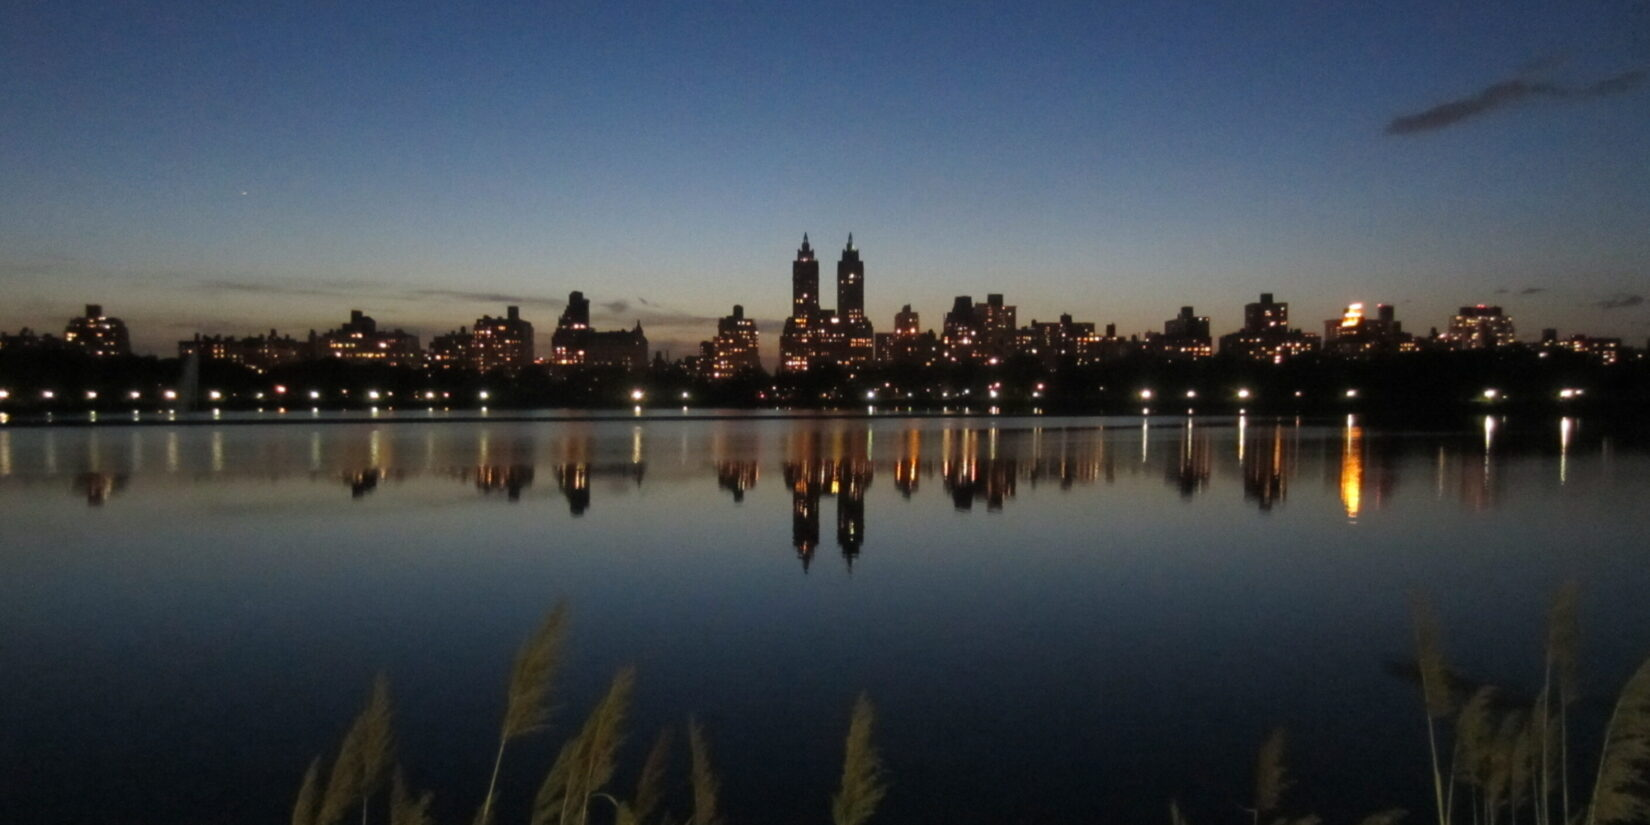 The skyline reflected on the water of the Reservoir, at dusk